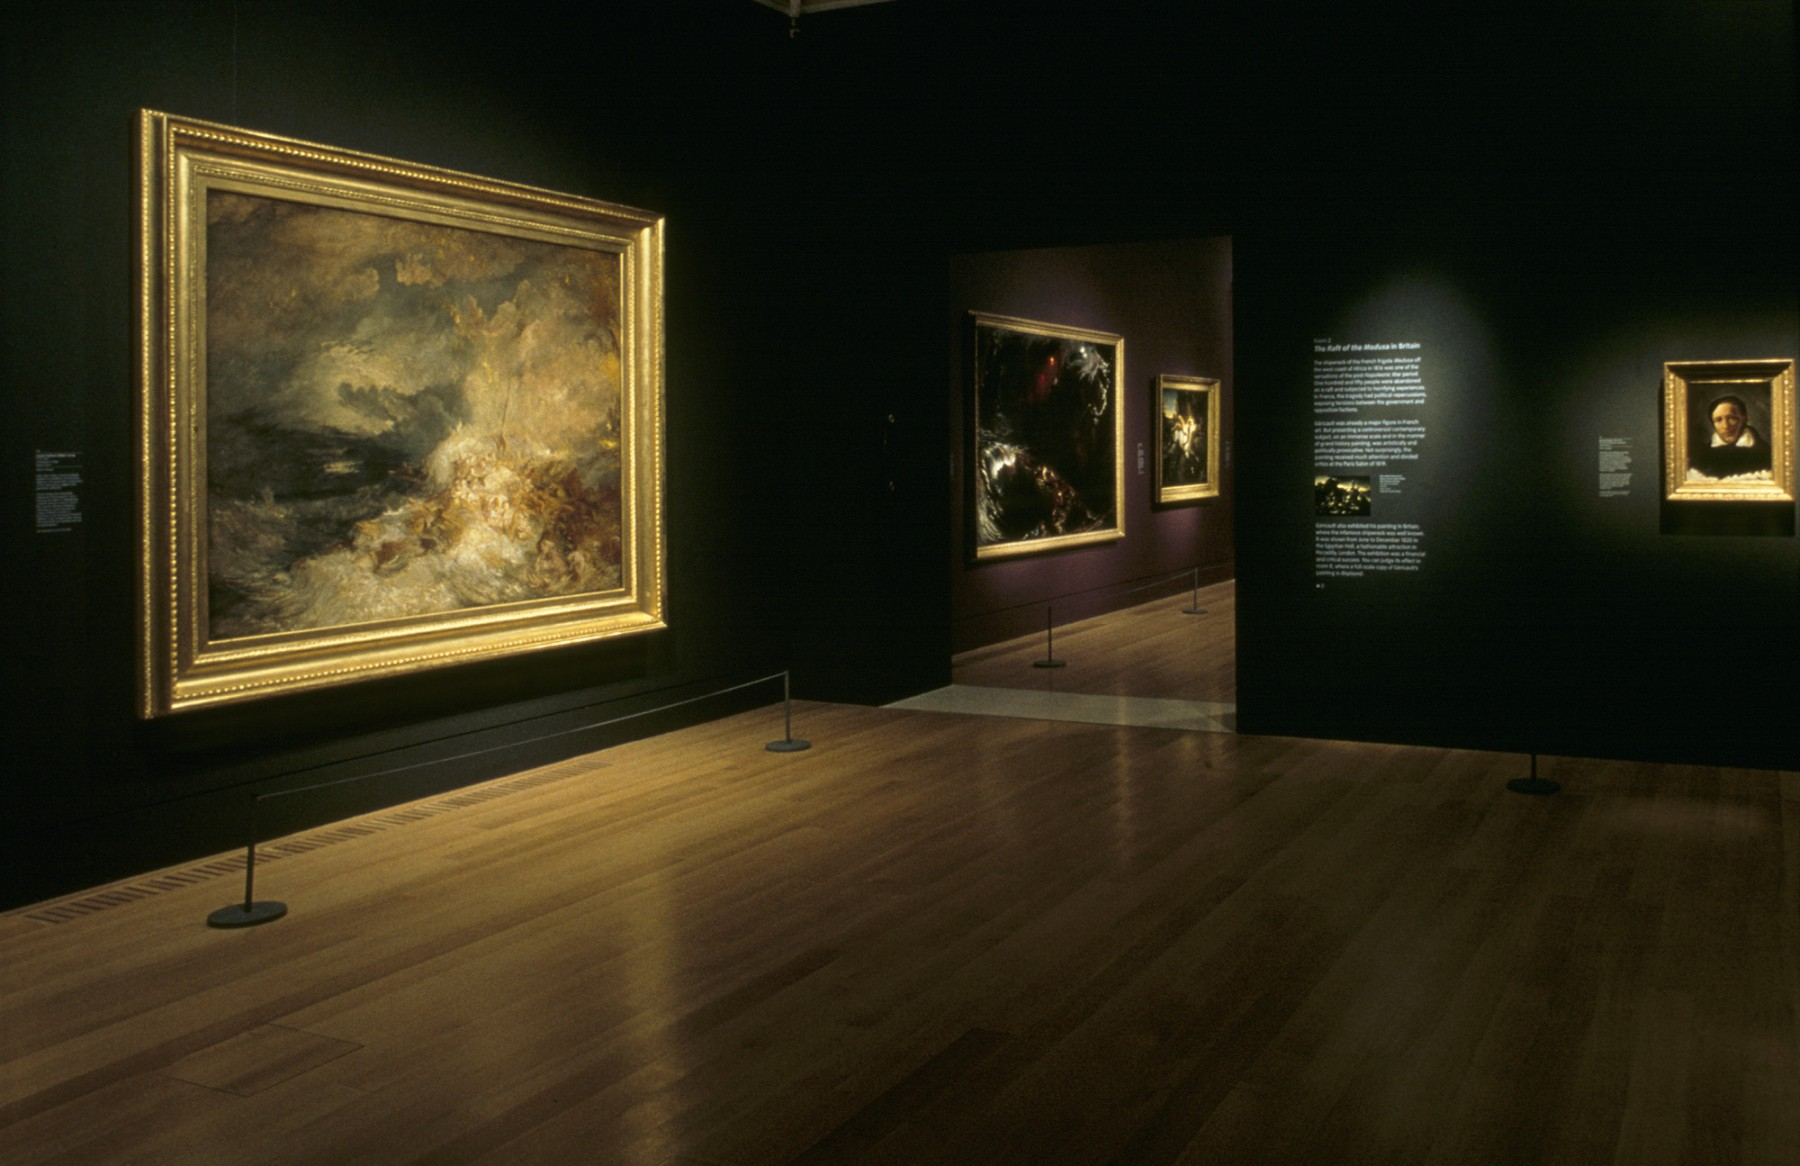 Jamie-Fobert-Architects-Tate-Britain-Constable-to-Delacroix-Gallery-Exhibition-Arts-Painting 2